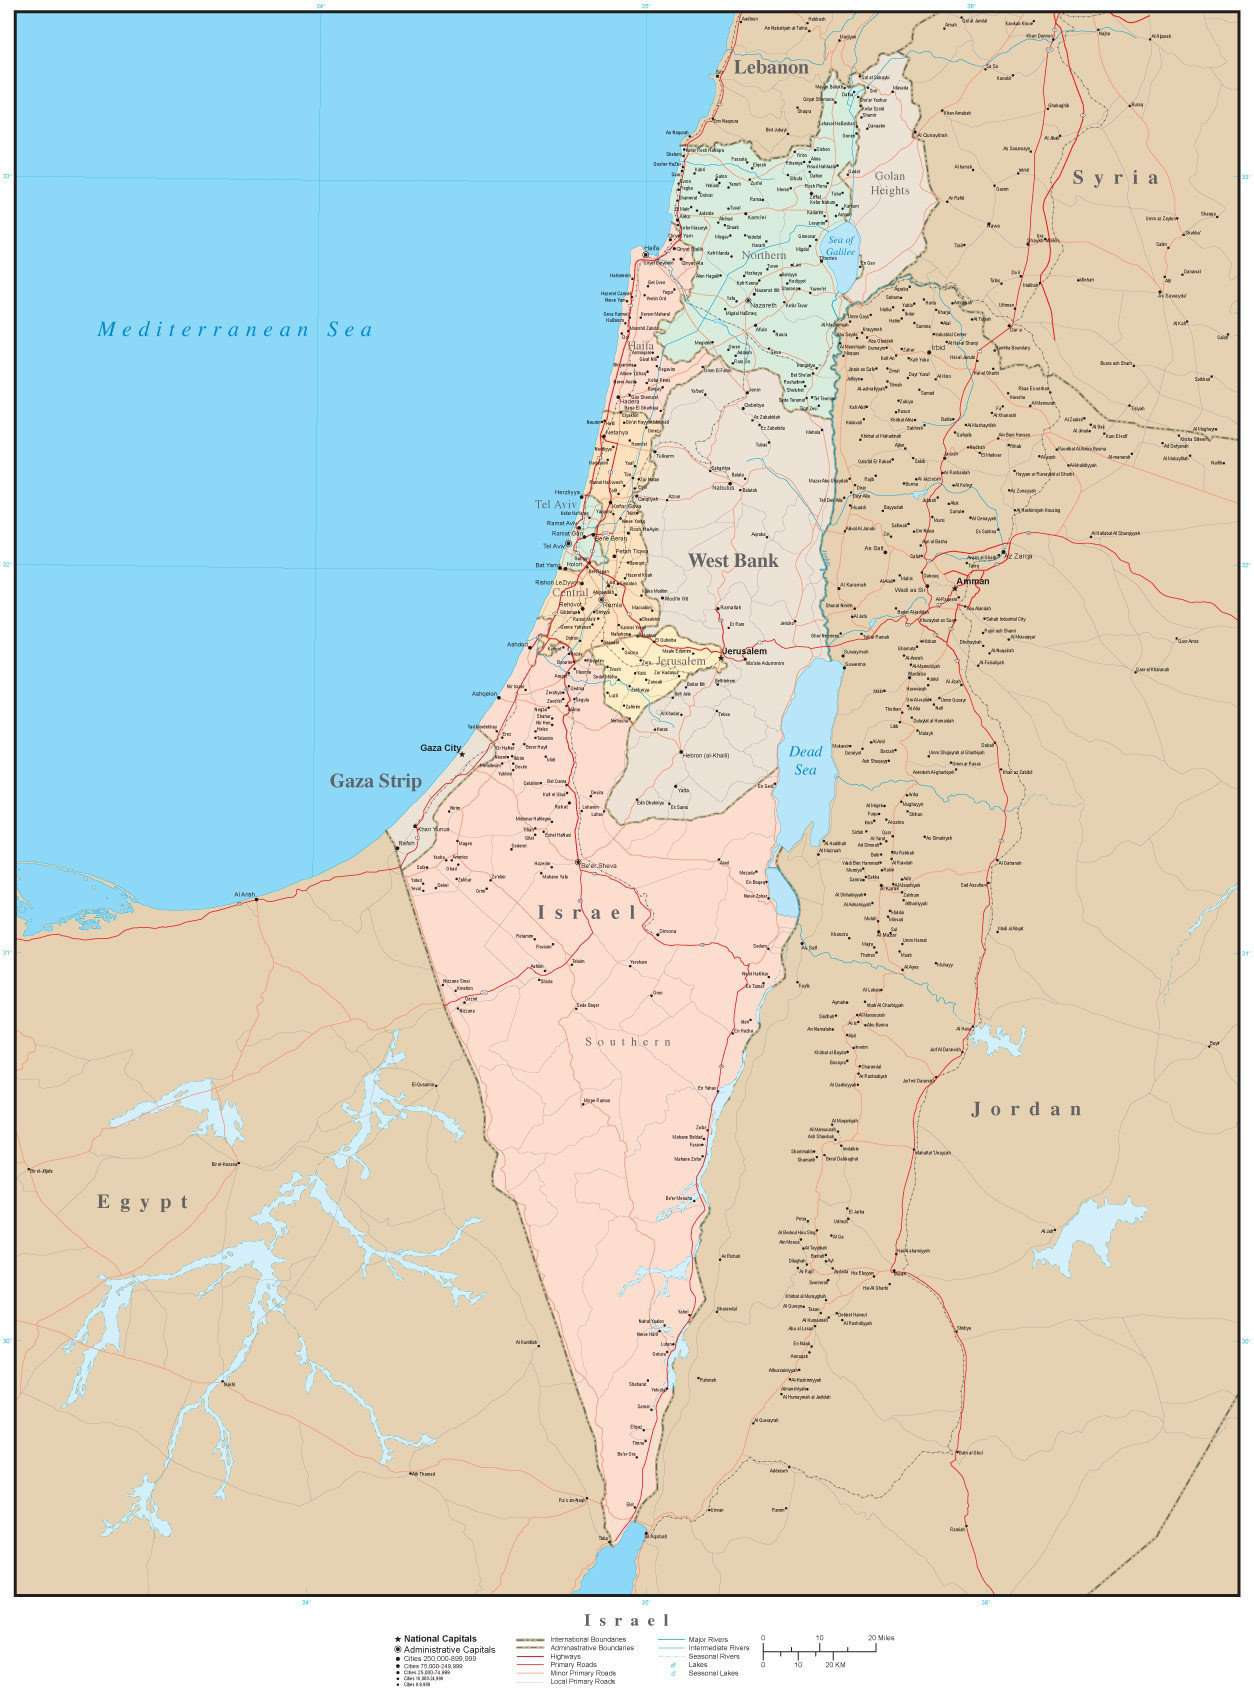 Israel Size: Poster Size Israel With Internal Administrative Divisions